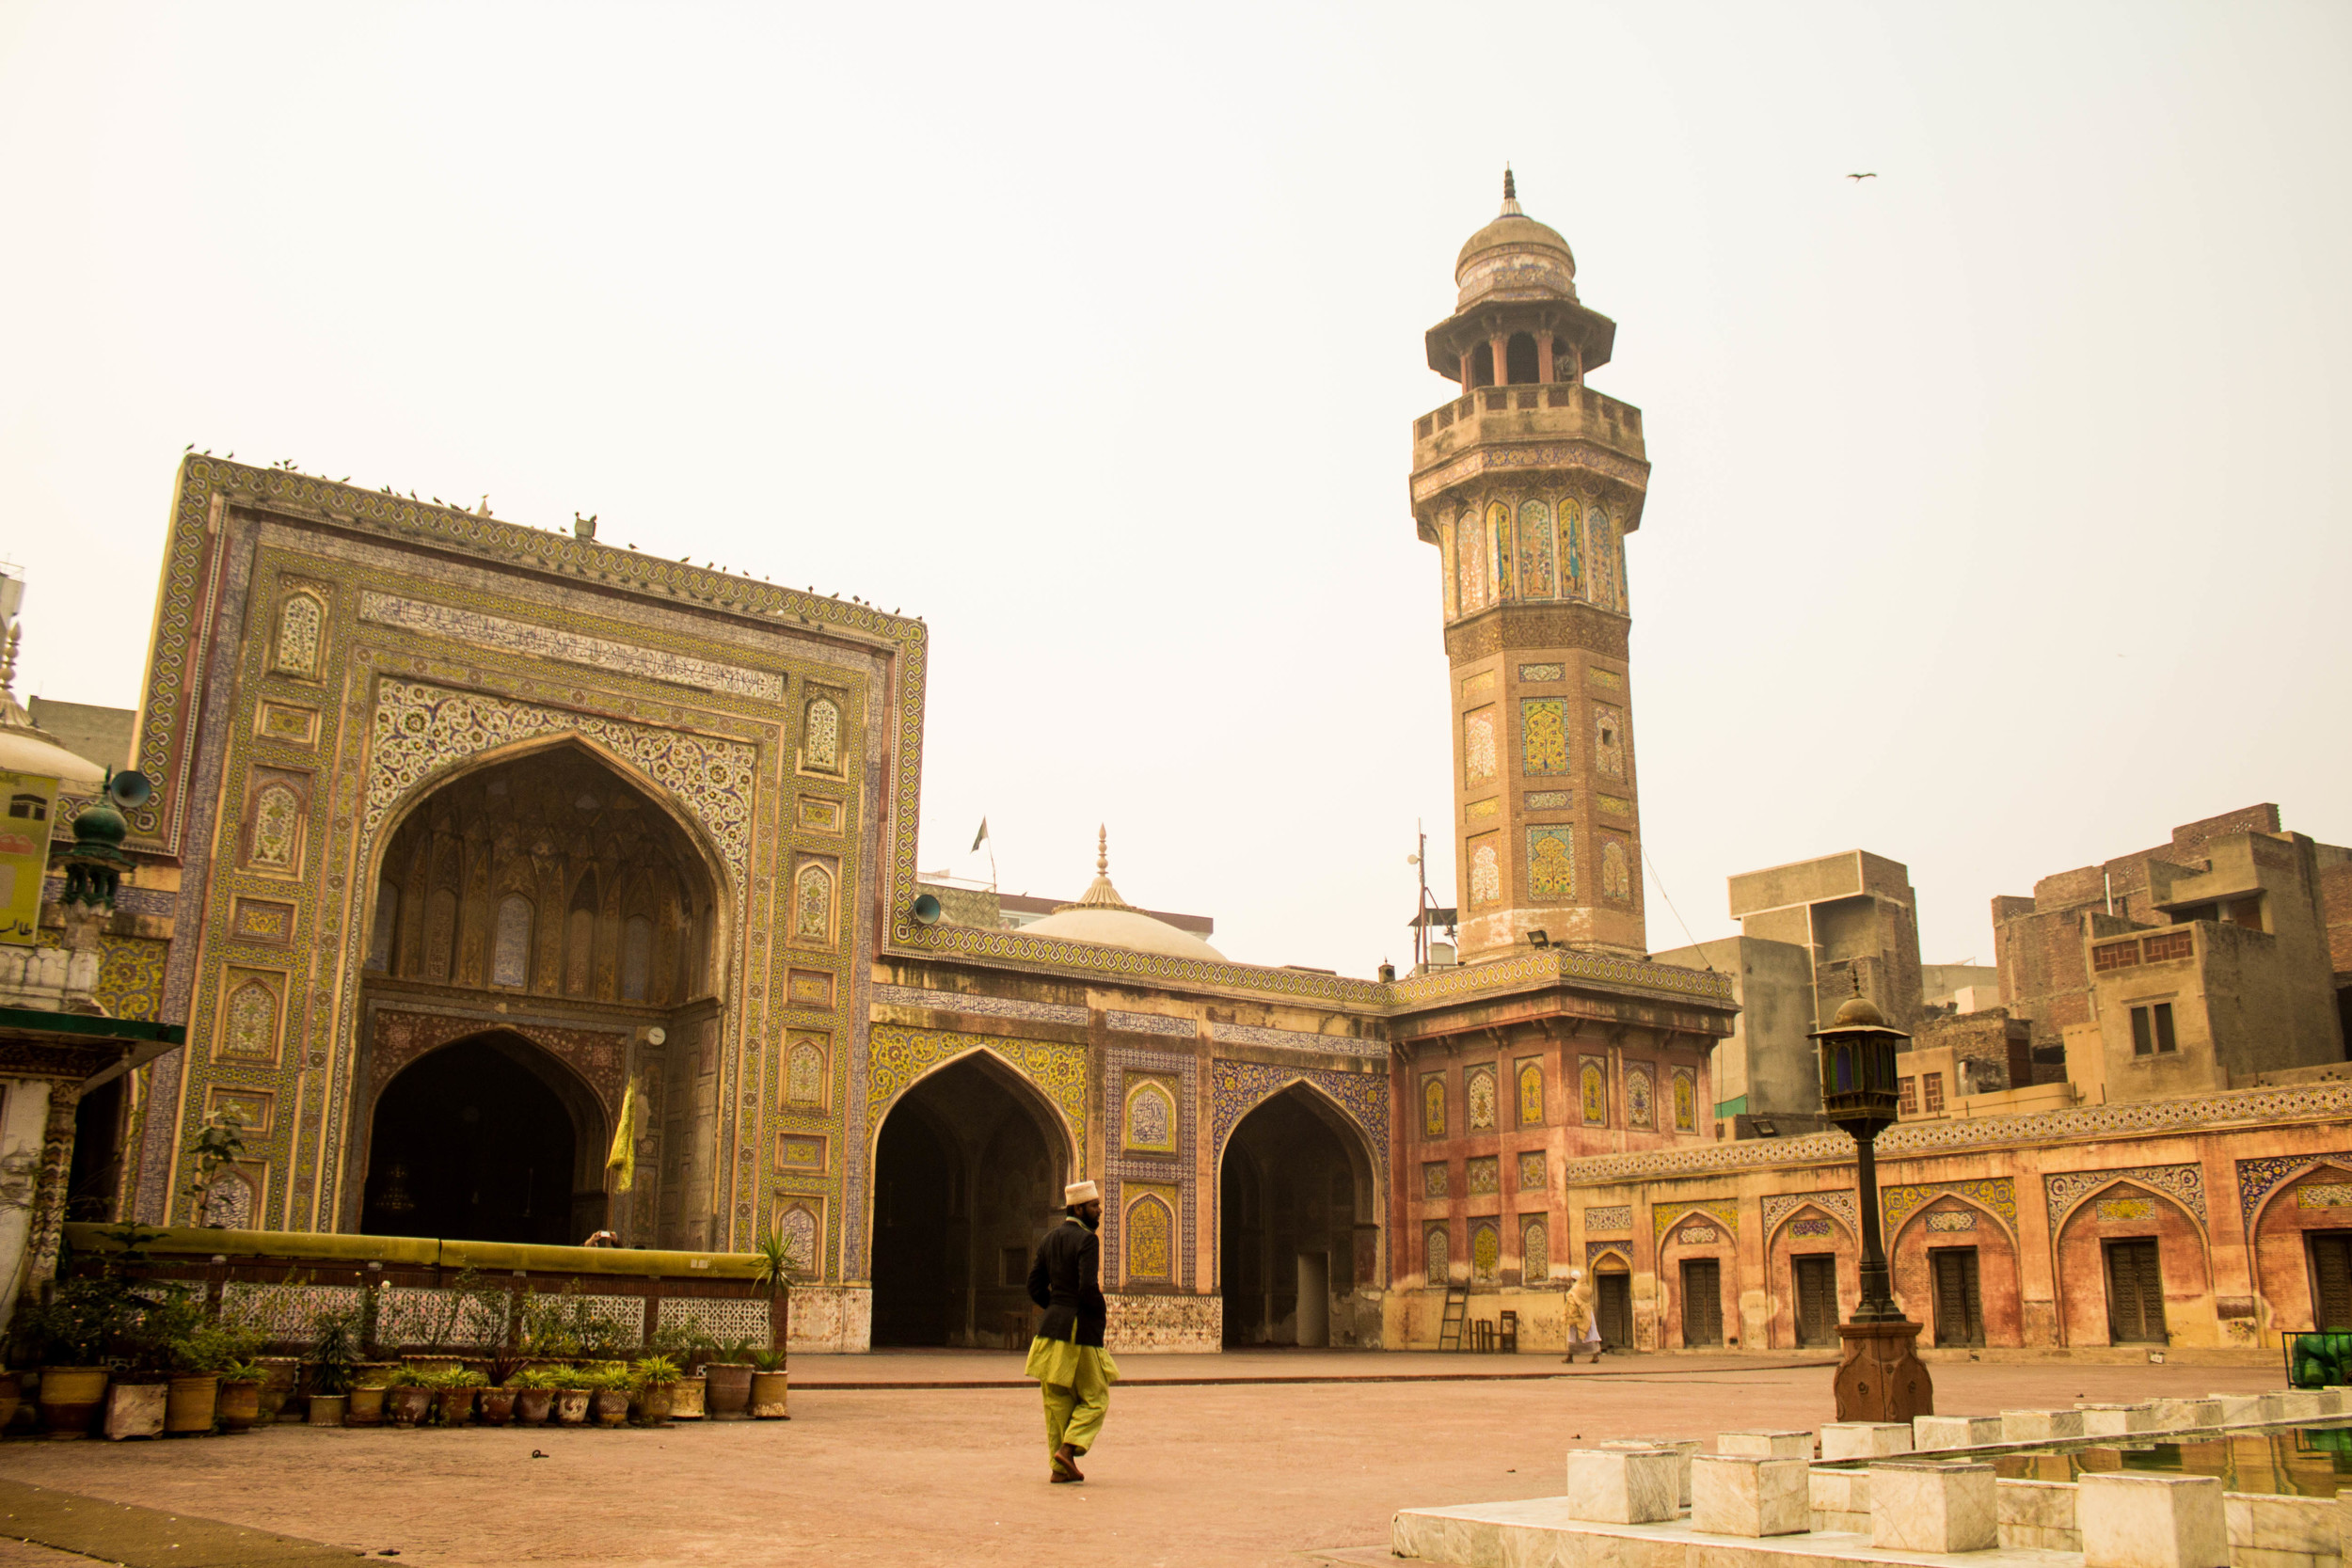 A man strolls through the inner courtyard of the Wazir Khan Masjid in Old Lahore.